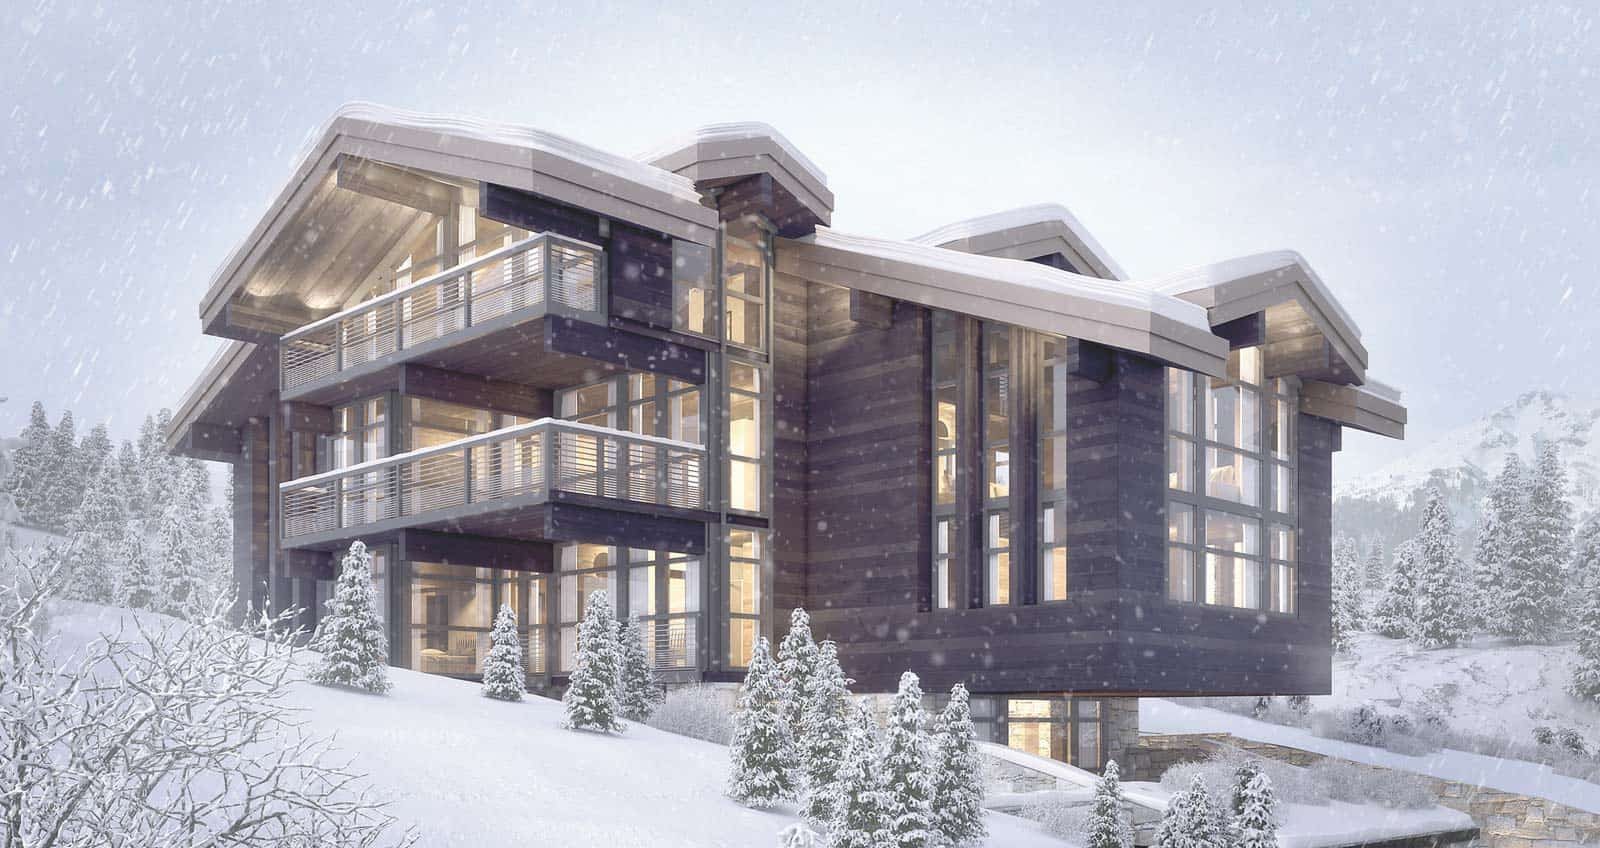 Chalet de Luxe Courchevel Maison d'architecte, villa contemporaine - Archidomo